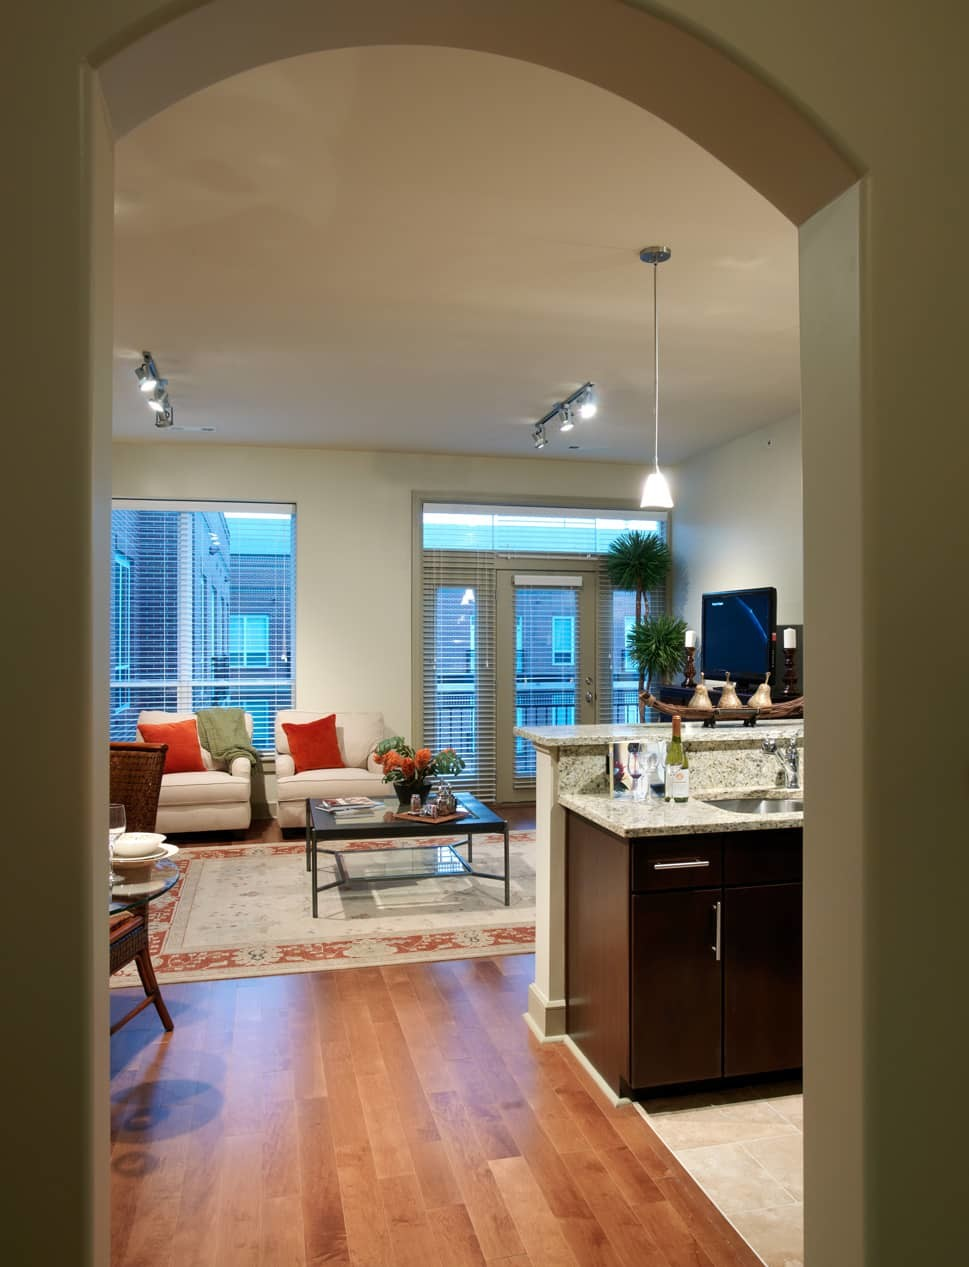 1 Bed, 1 Bath apartment in Needham for $2,627